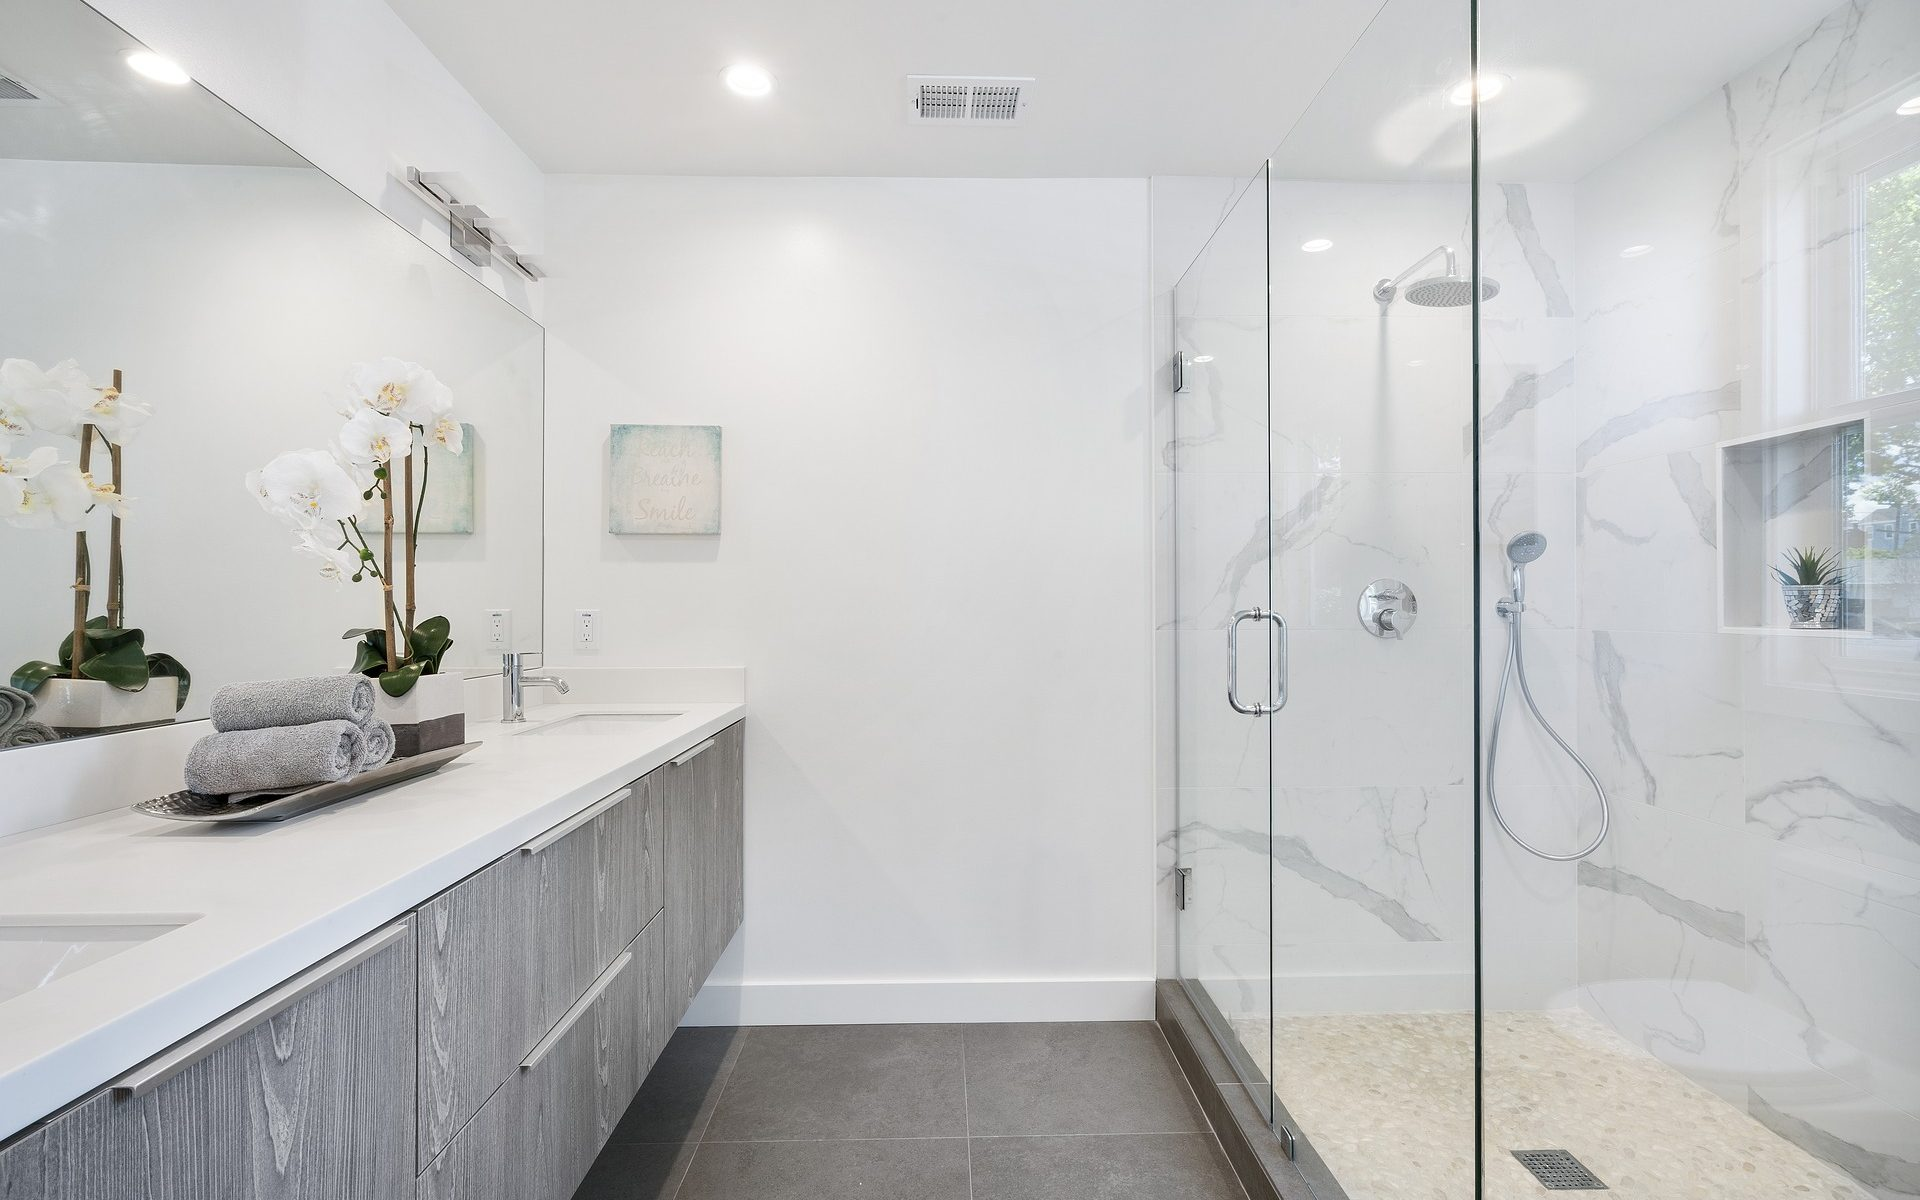 Glass shower box in the bathroom